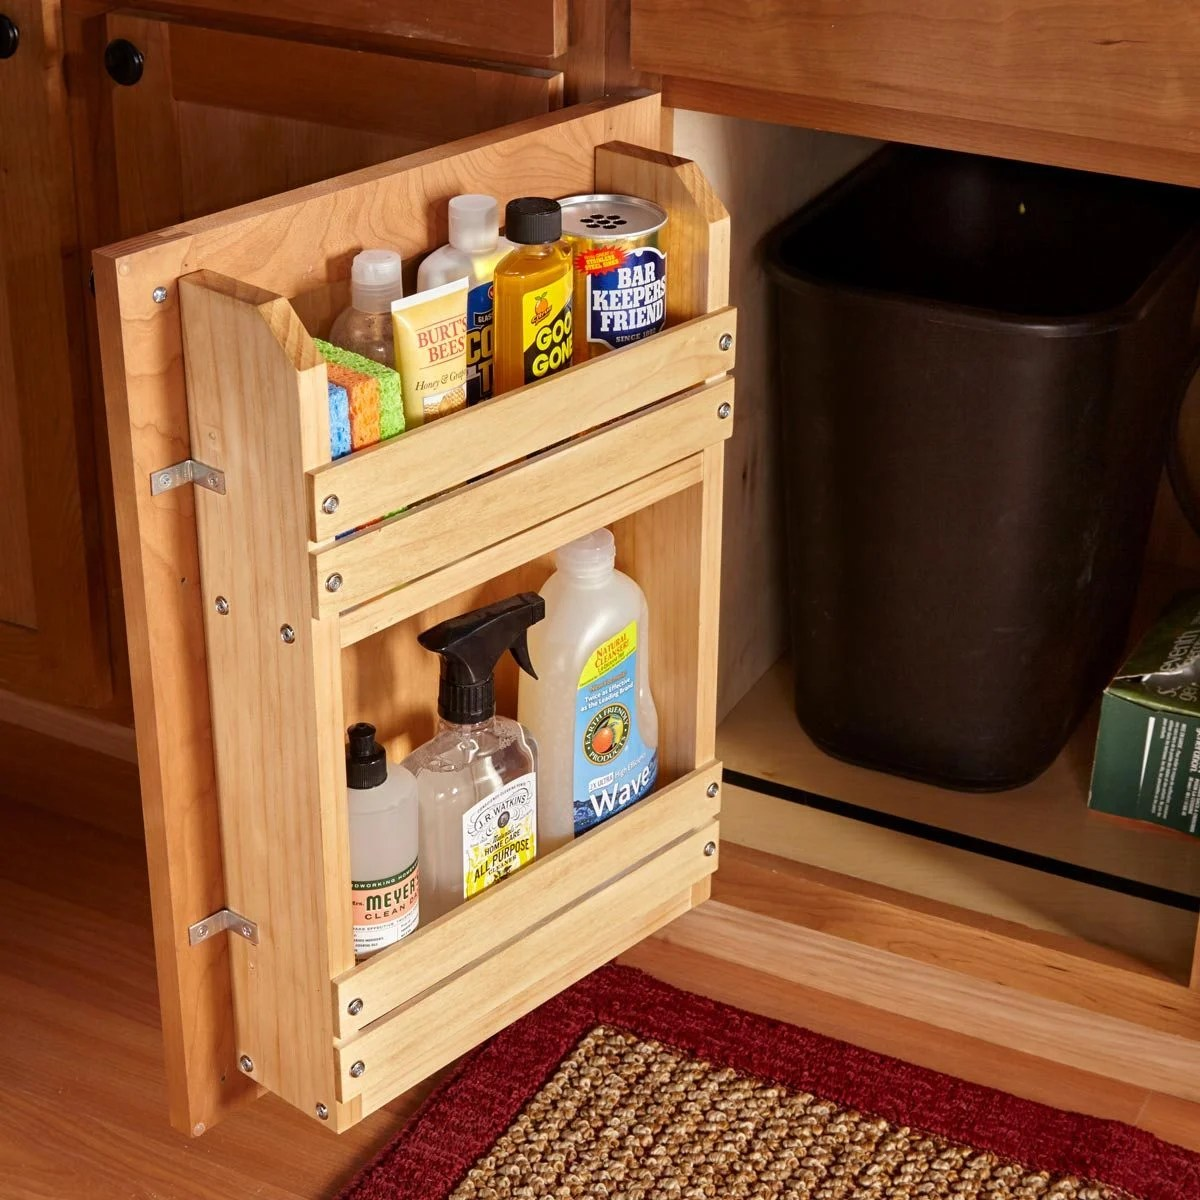 Easy Solutions for Everyday Organization Problems  The